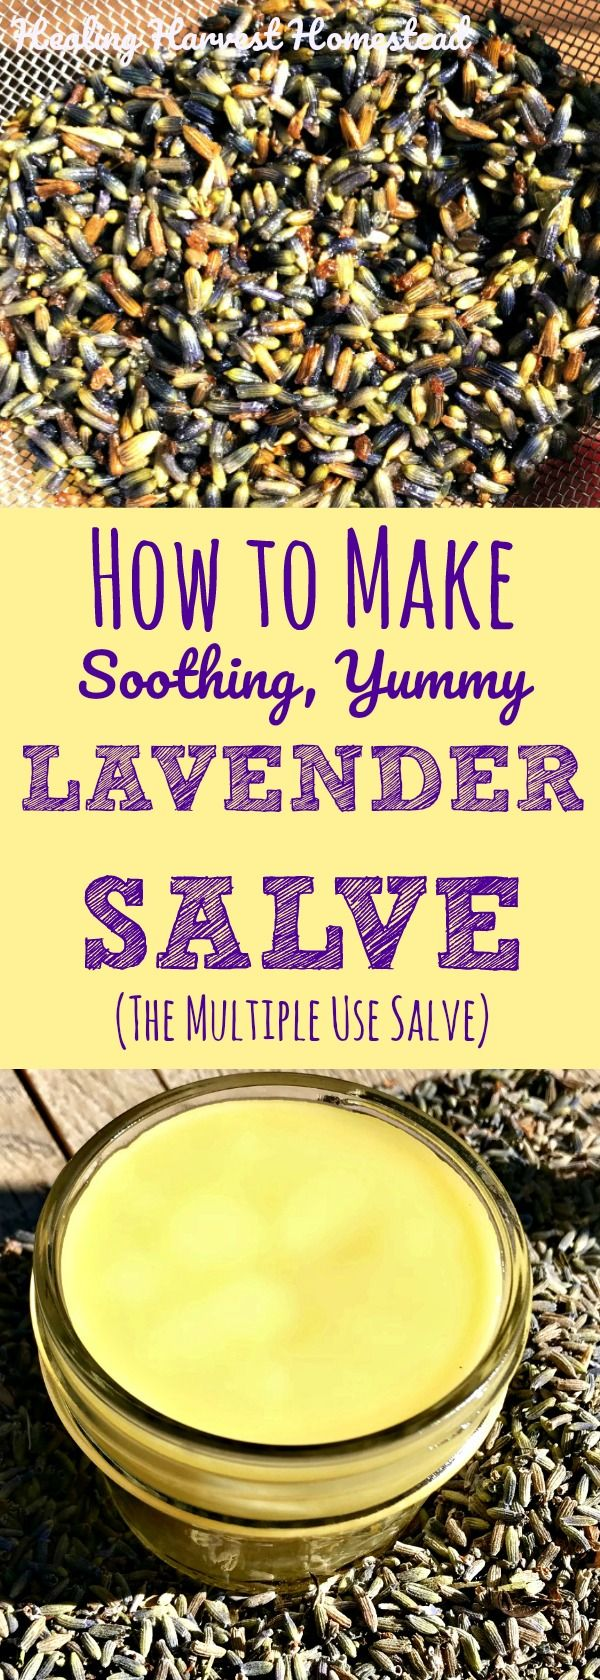 Lavender salve, made with oils infused with lavender buds and lavender essential oil, is an incredibly useful gift that your friends and family will appreciate so much! Here is my recipe and directions for how to make lavender salve, quickly and easily!